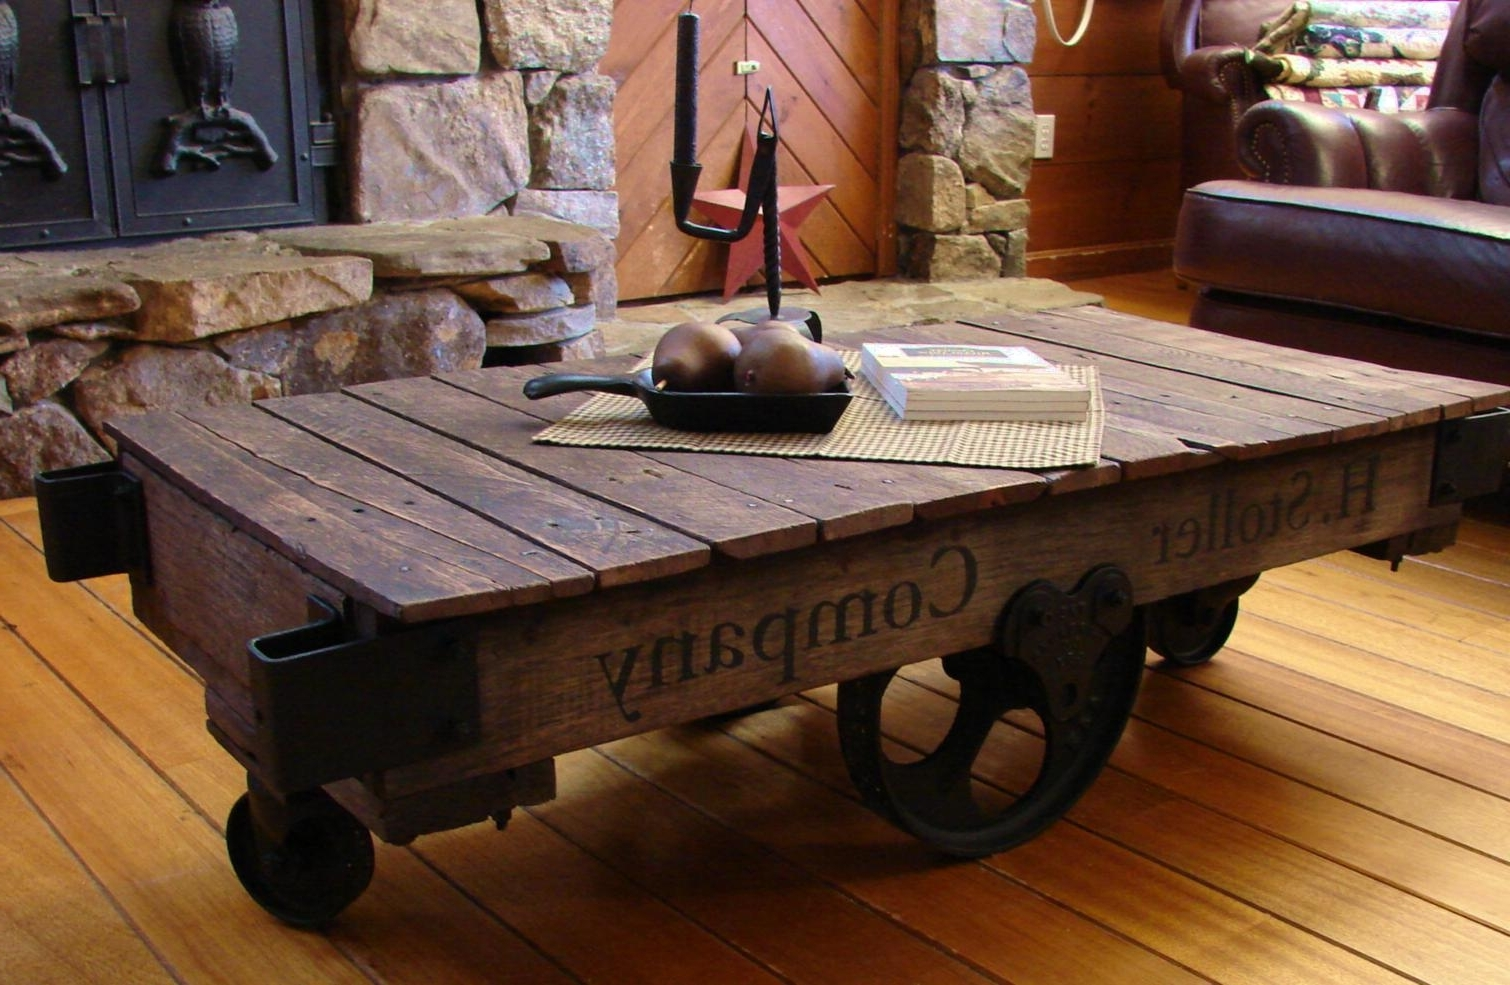 Preferred Natural Wheel Coffee Tables For Best Upcycled Furniture Ideas Interface Natural Woodgrains Lvt (View 13 of 20)